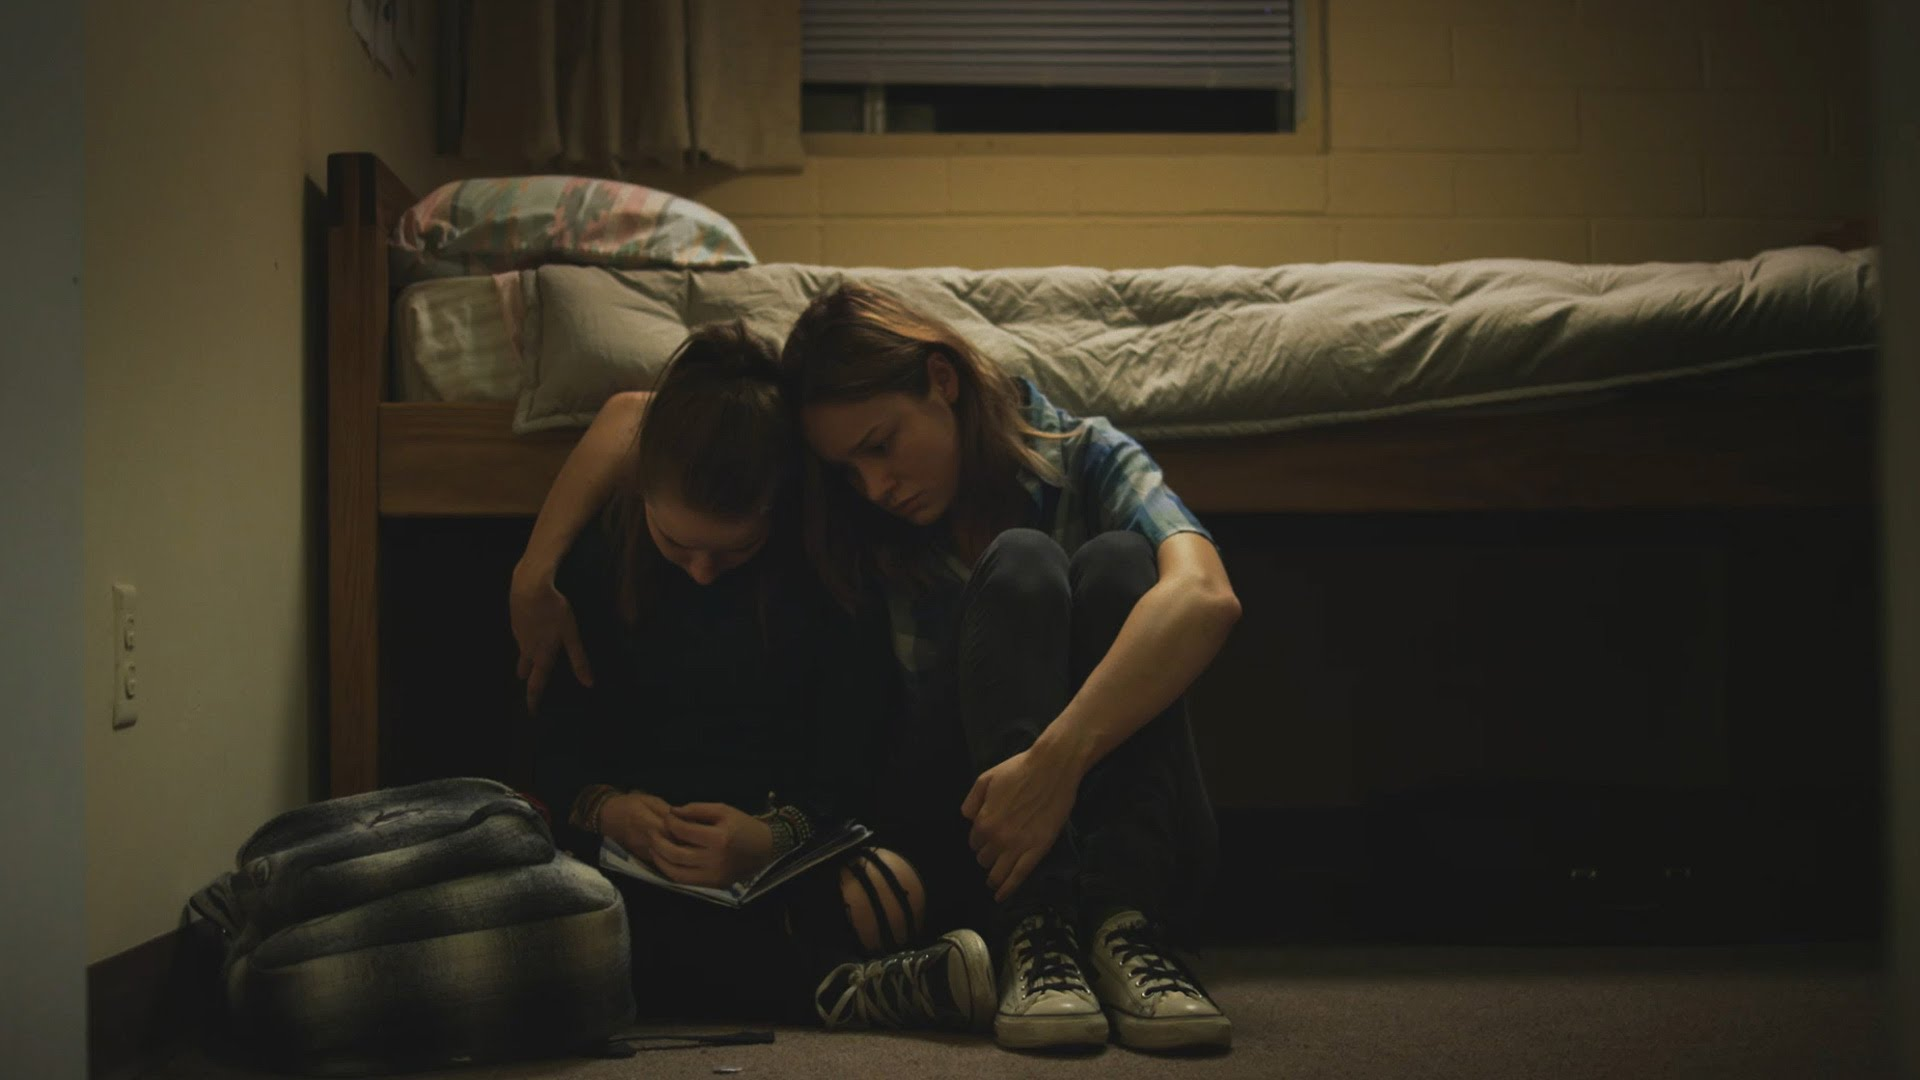 Short Term 12 Official Trailer & Plot